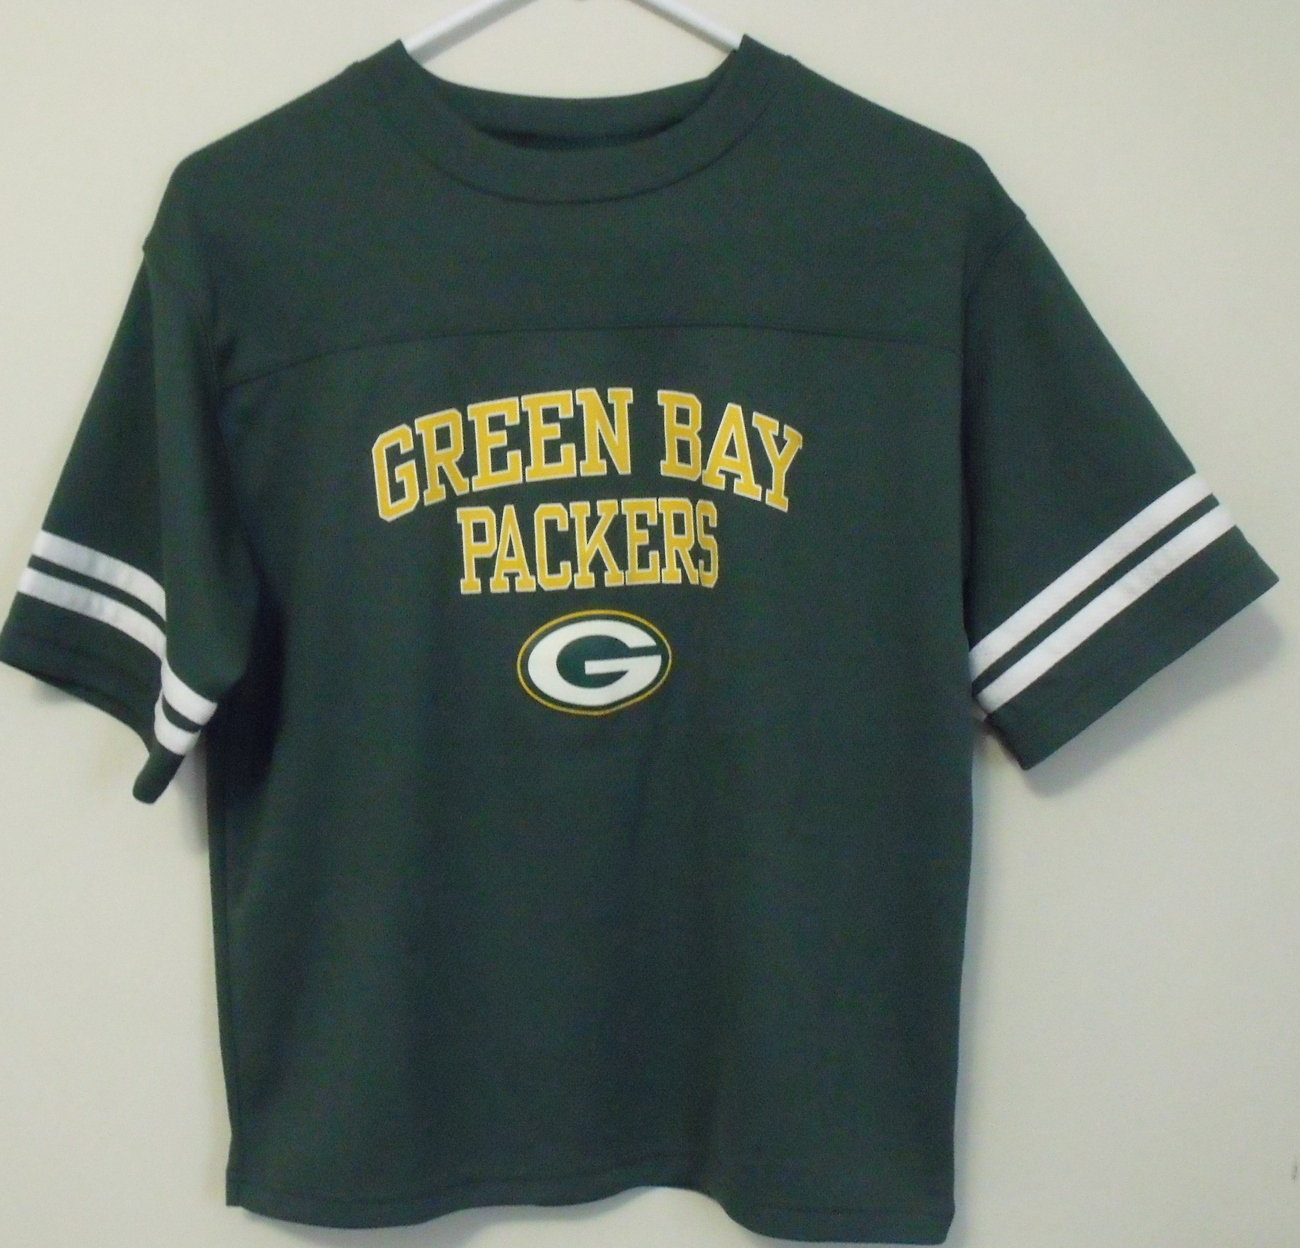 Boys_green_bay_packers_shirt_front